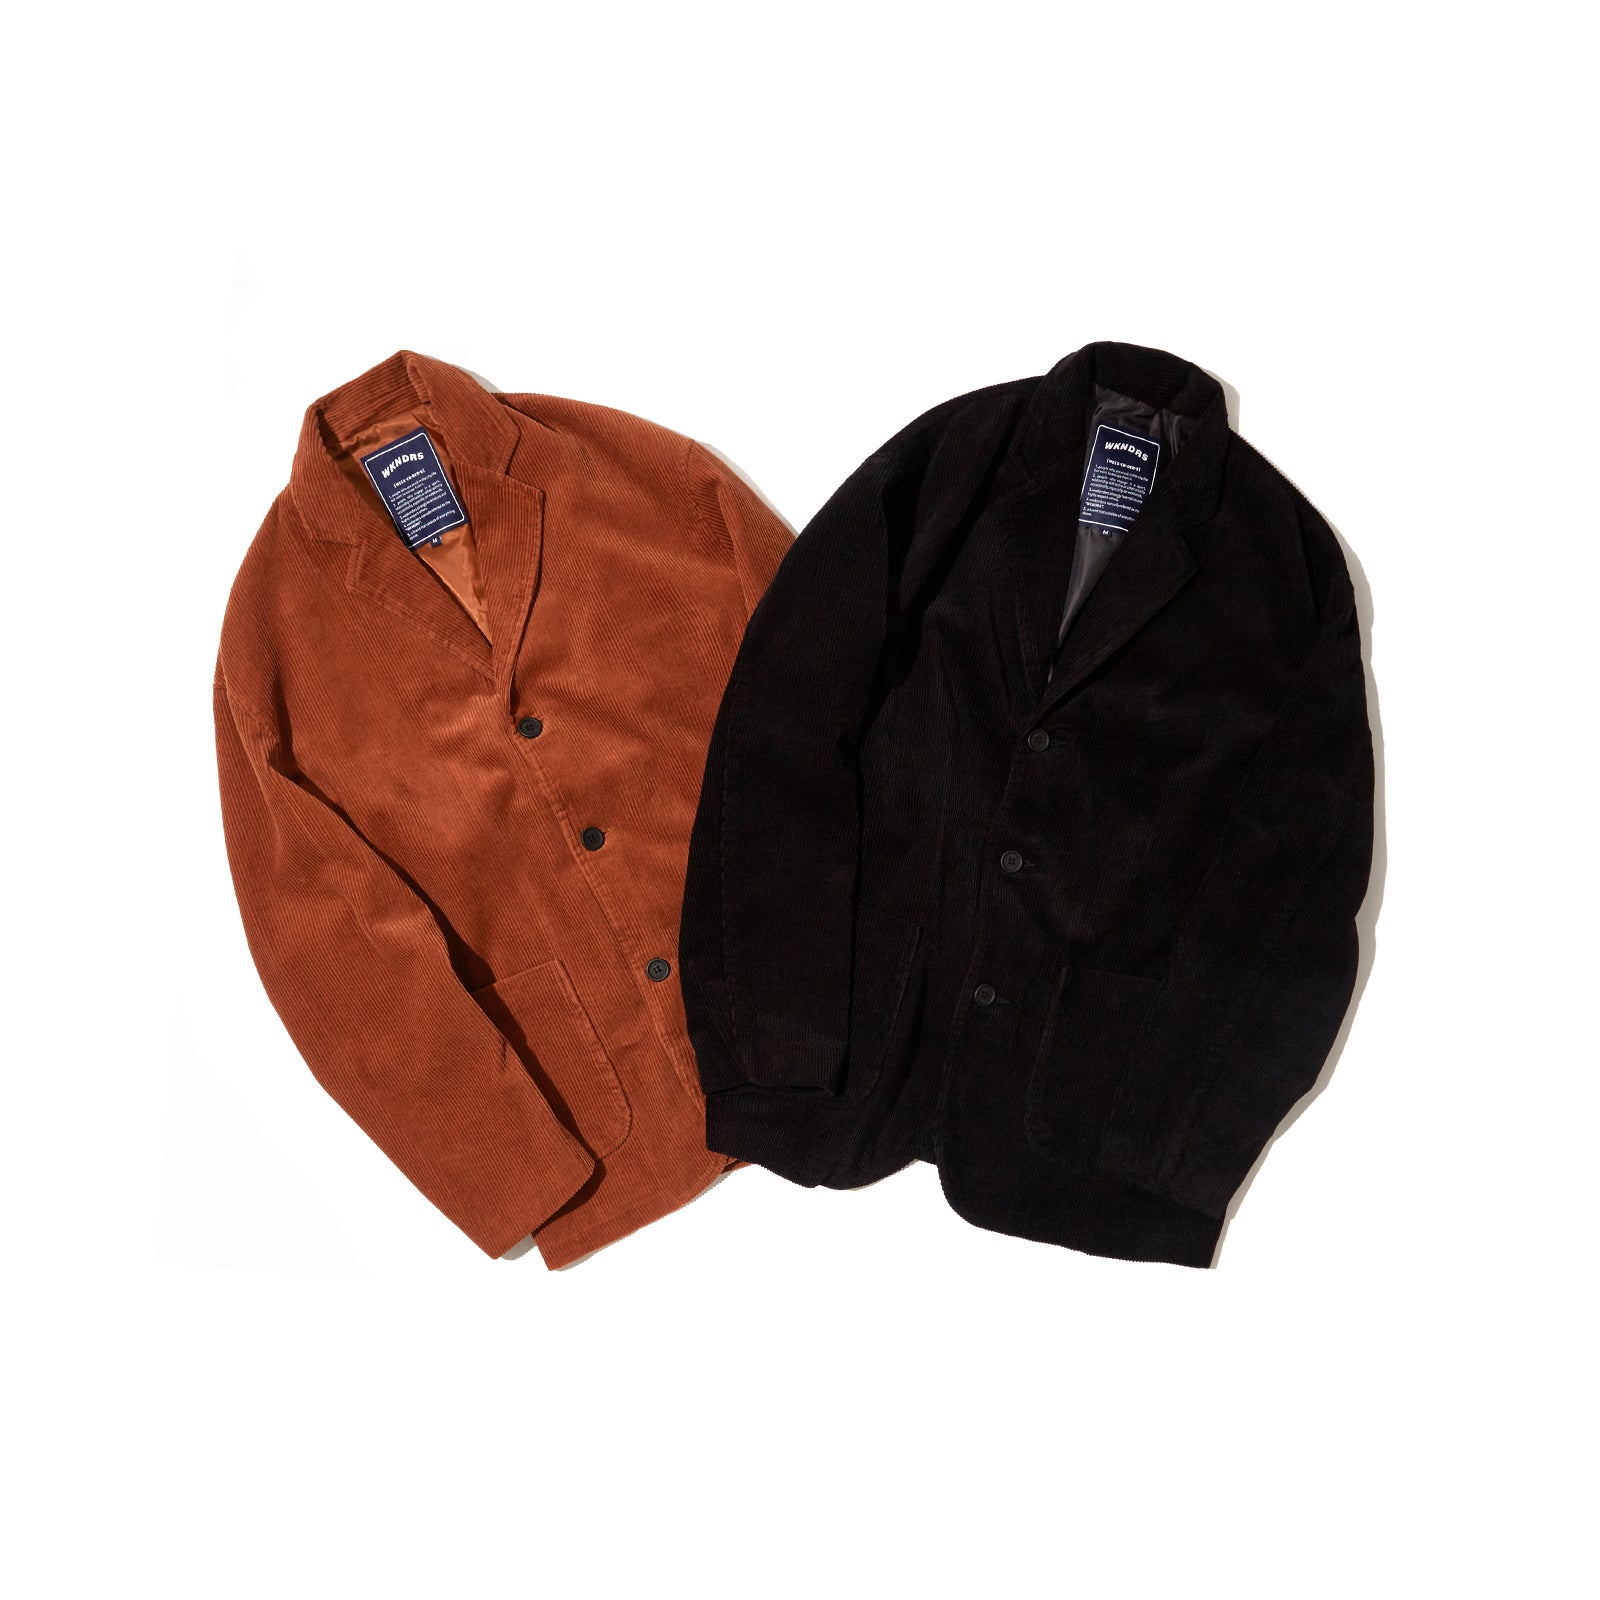 CORDUROY SINGLE JACKET (BROWN)